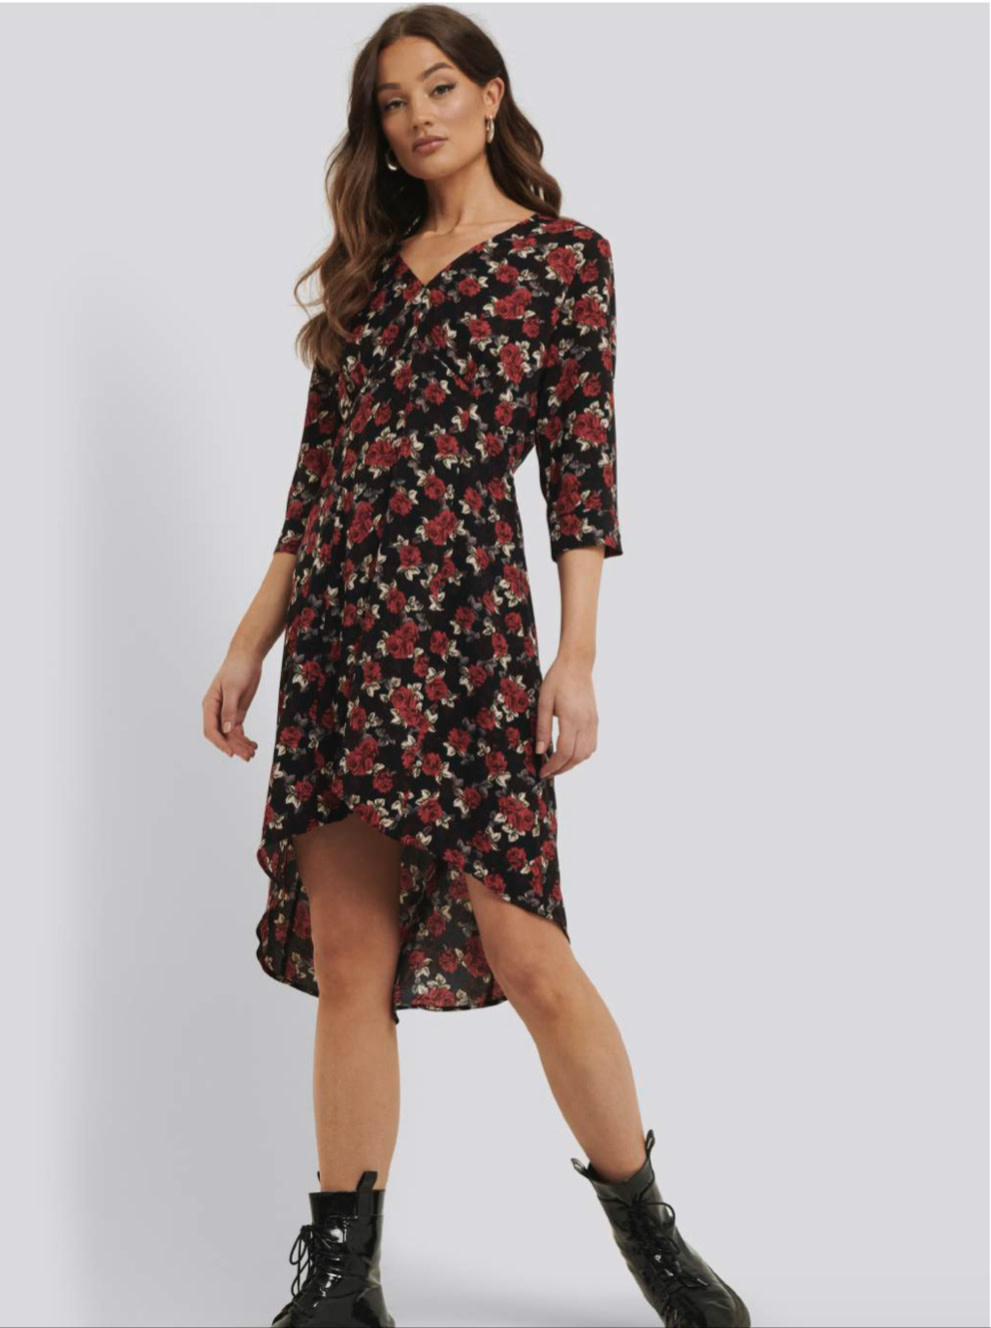 RUTH & CIRCLE RUTH & CIRCLE - lilly dress red flowers